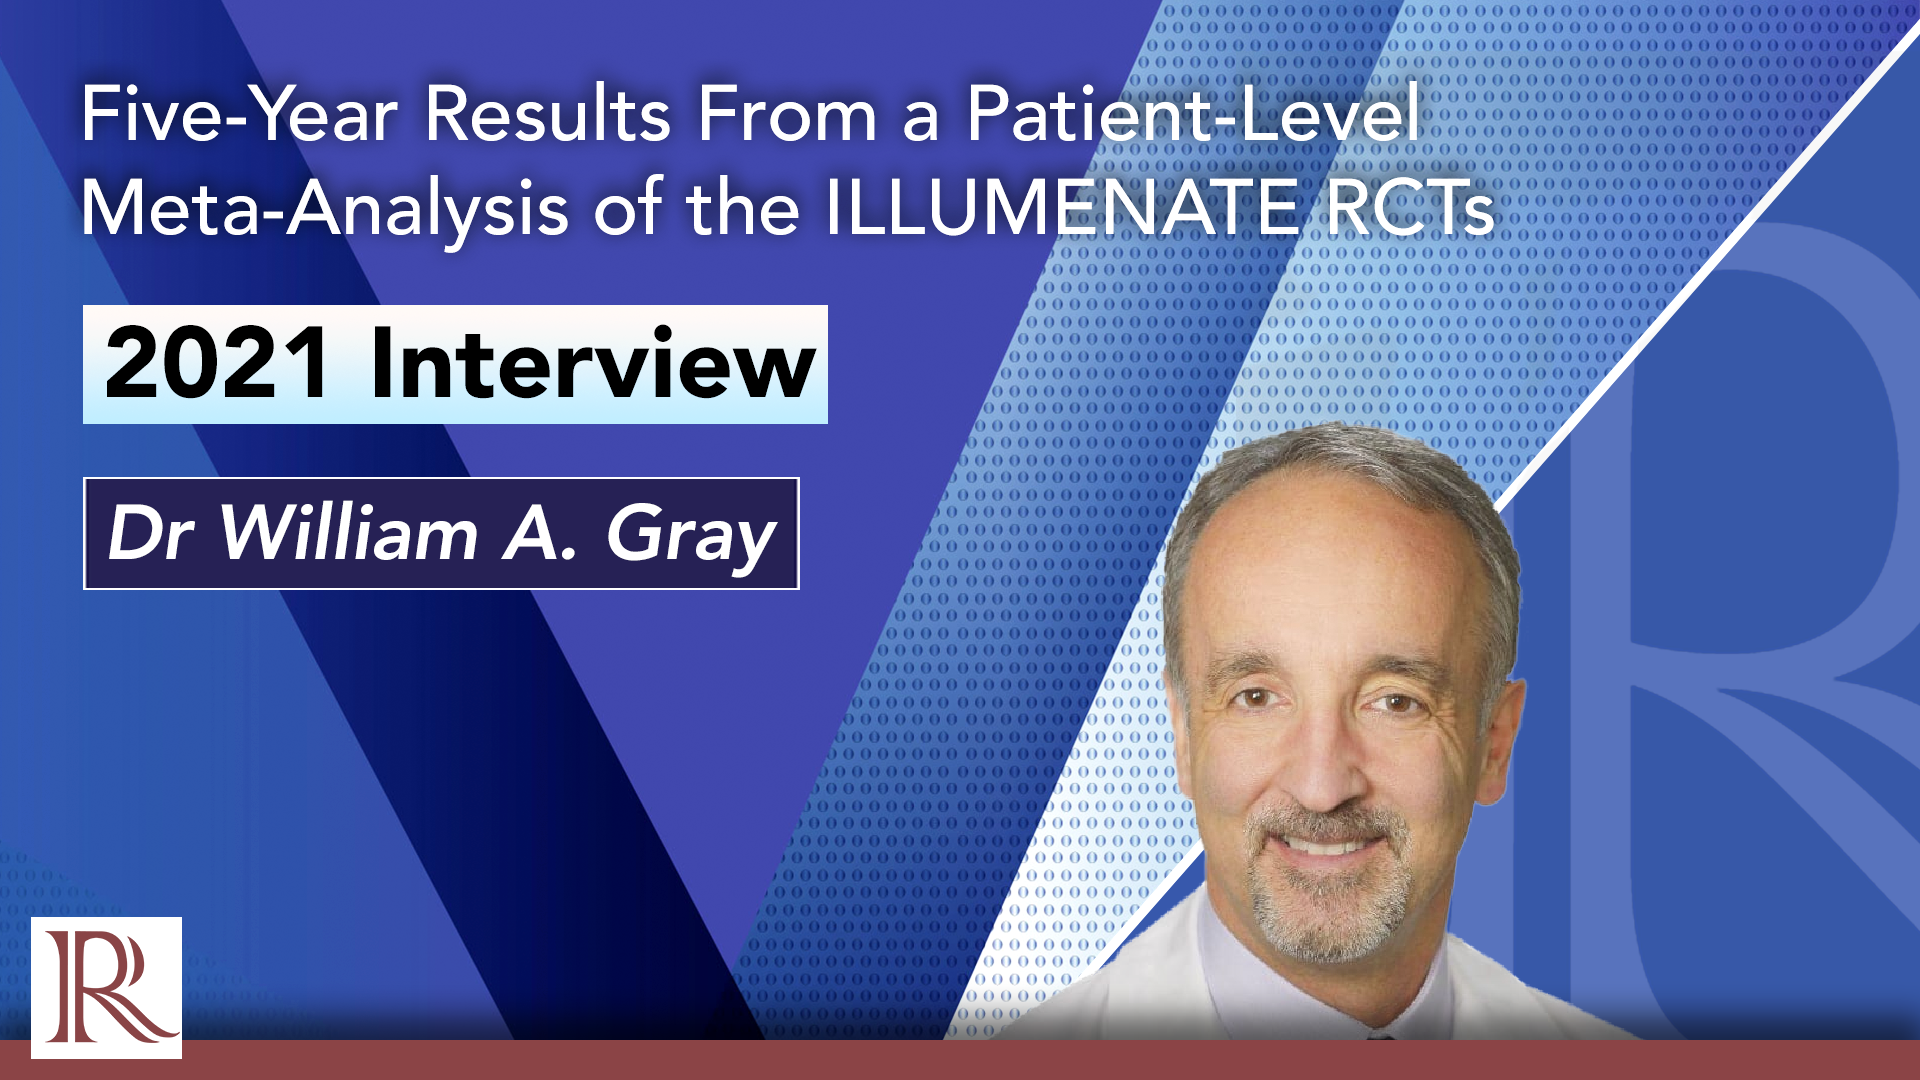 Five-Year Results From a Patient-Level Meta-Analysis of the ILLUMENATE RCTs